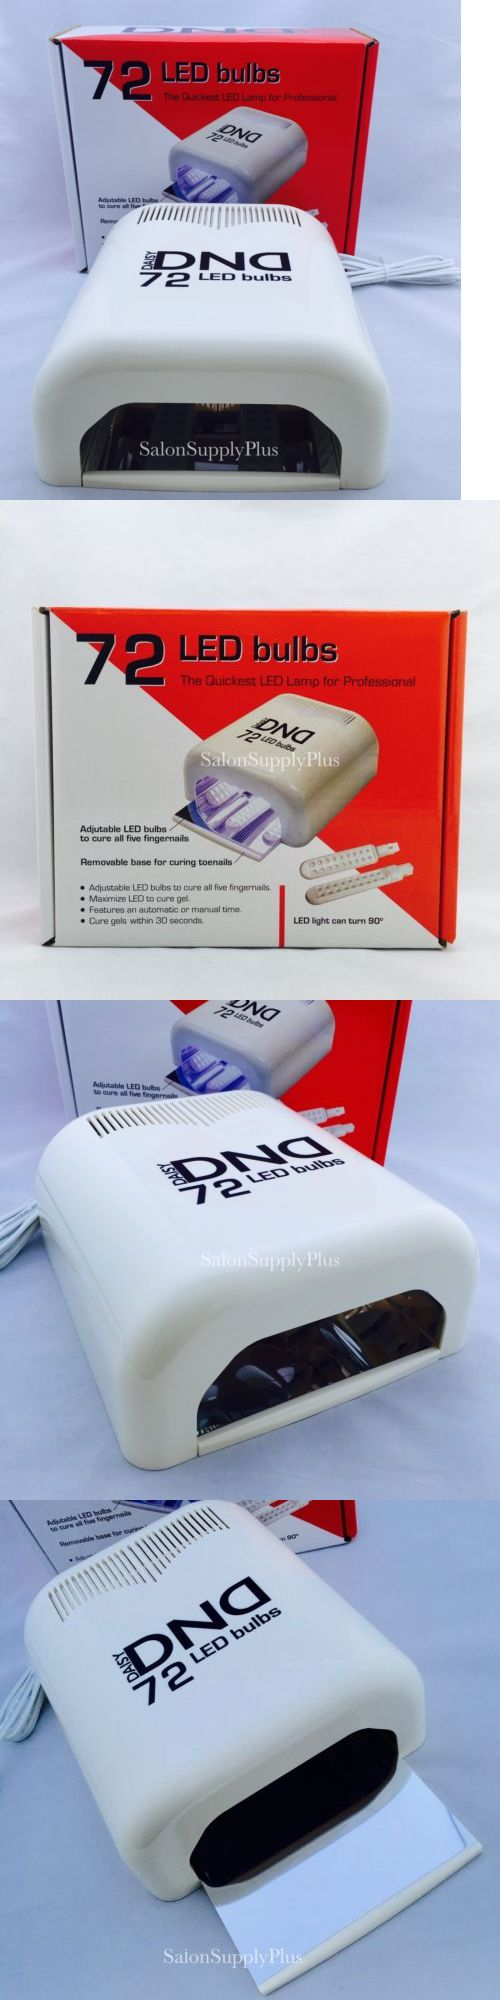 Nail Dryers and UV LED Lamps: Ikonna - Dnd Led Light - Cures Gel Nail Polish 30 Seconds - Usa Assembled -> BUY IT NOW ONLY: $99.99 on eBay!